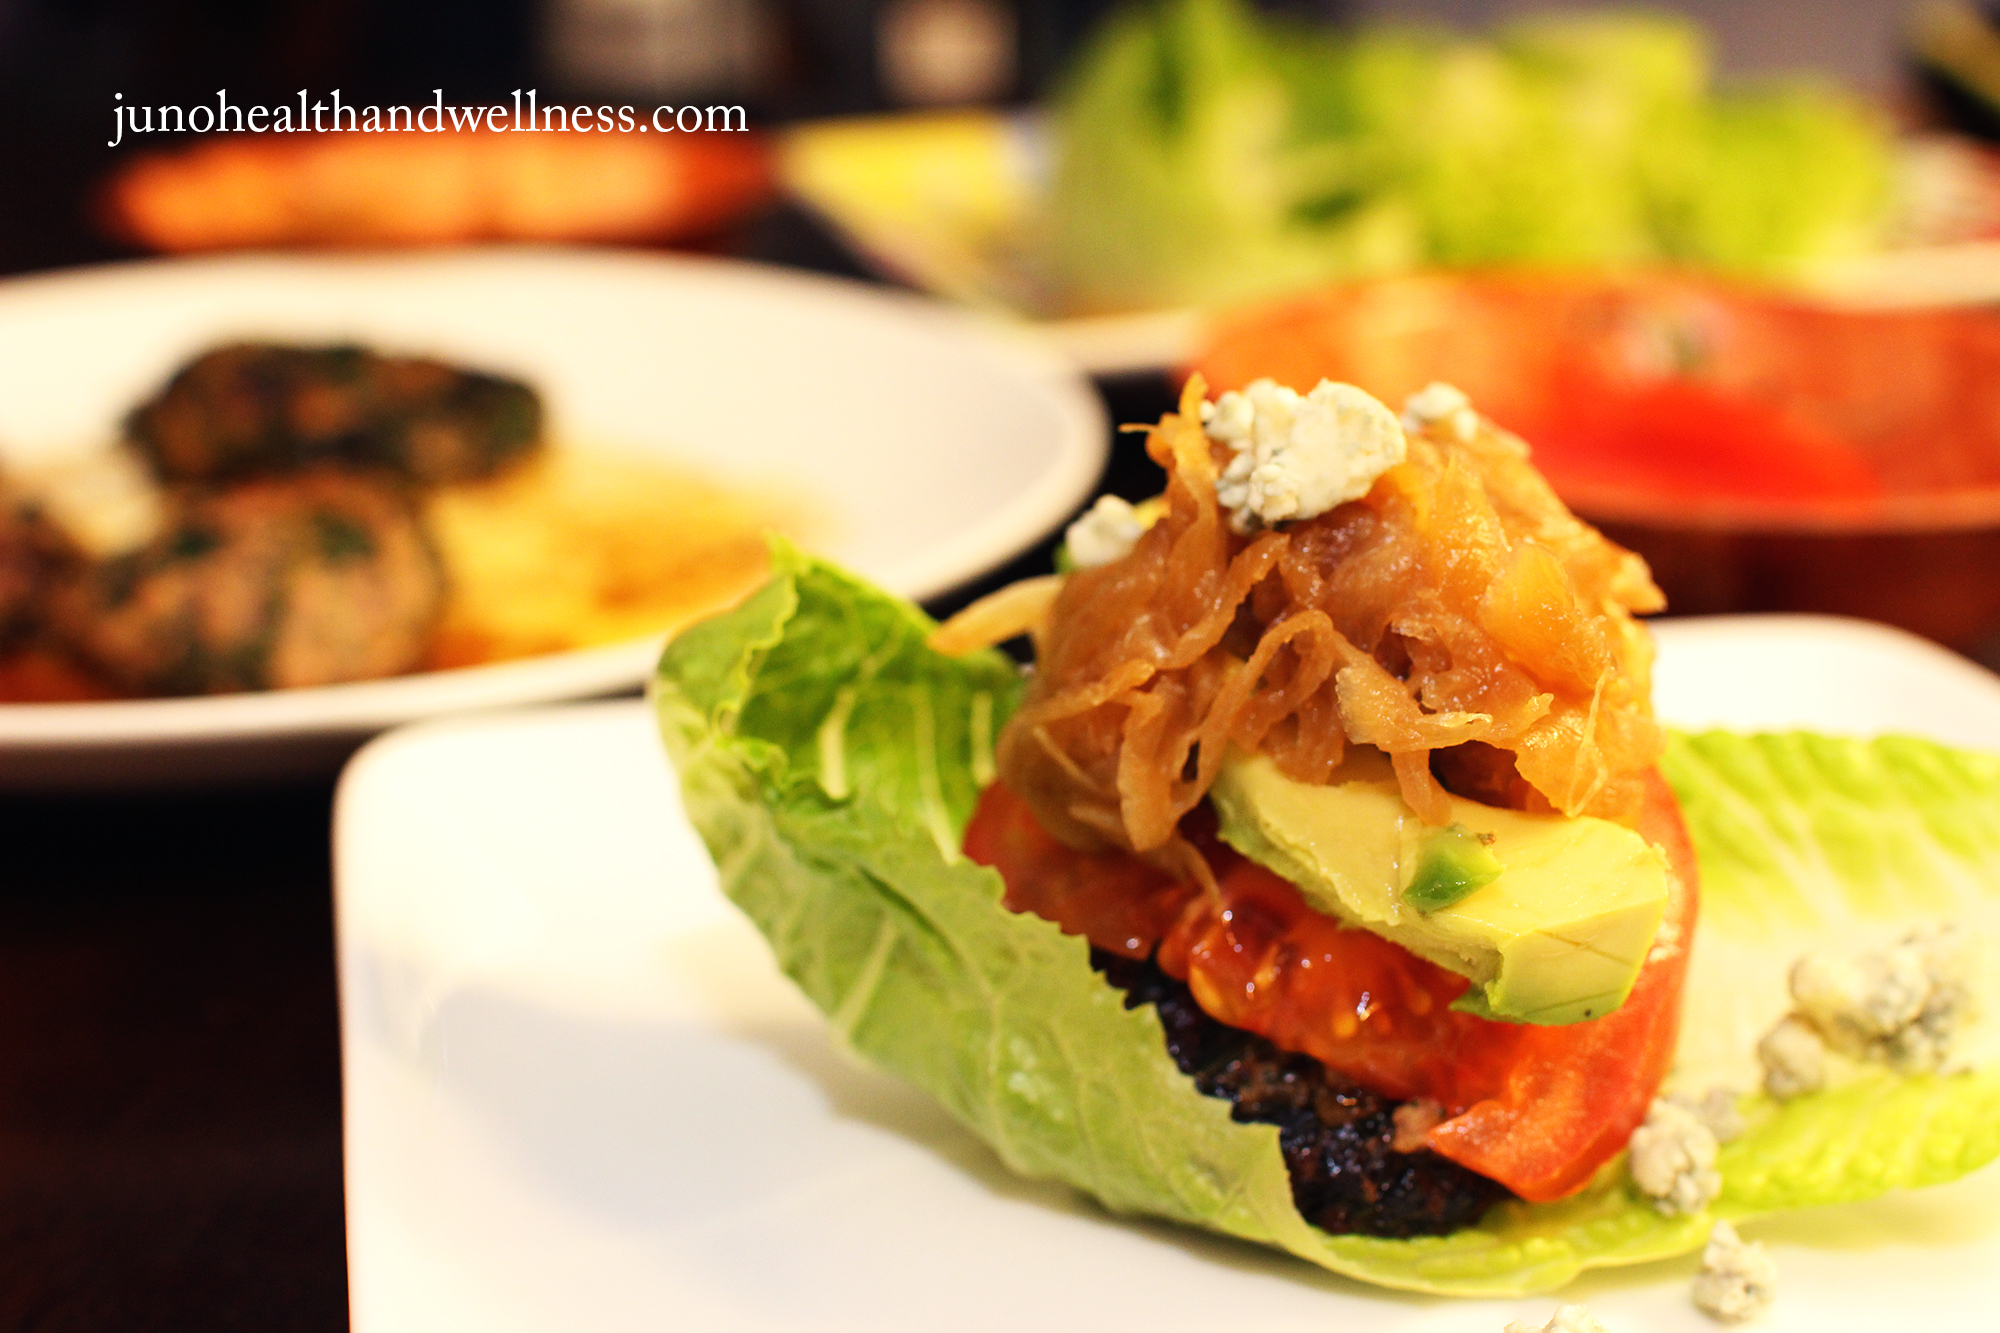 Spinach, Kale, and Beef Burger